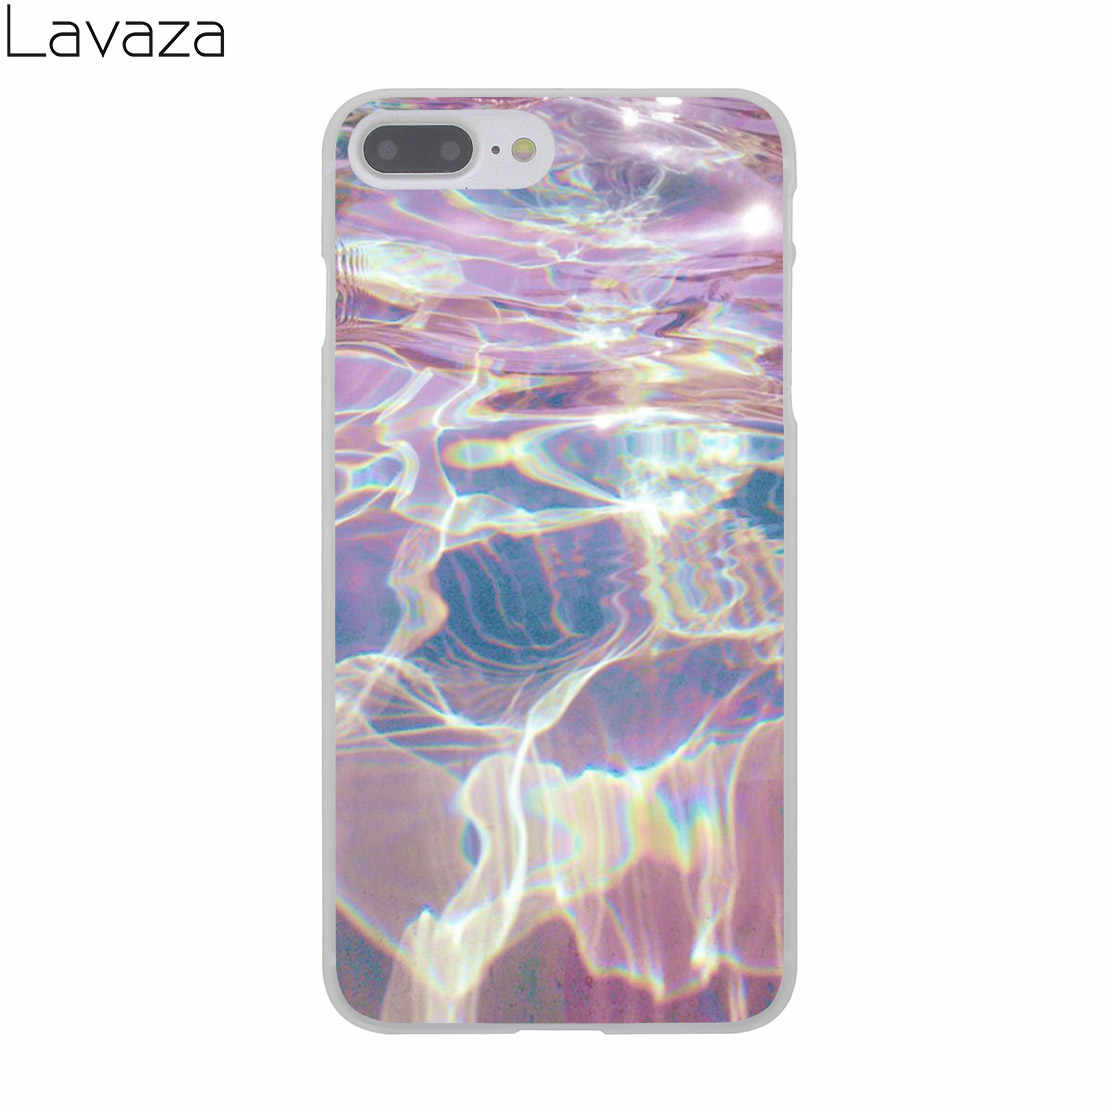 8503bfa4883 ... Lavaza Abstract Rainbow Ripple Tie Dye art Hard Cover Case for iPhone X  XS Max XR ...